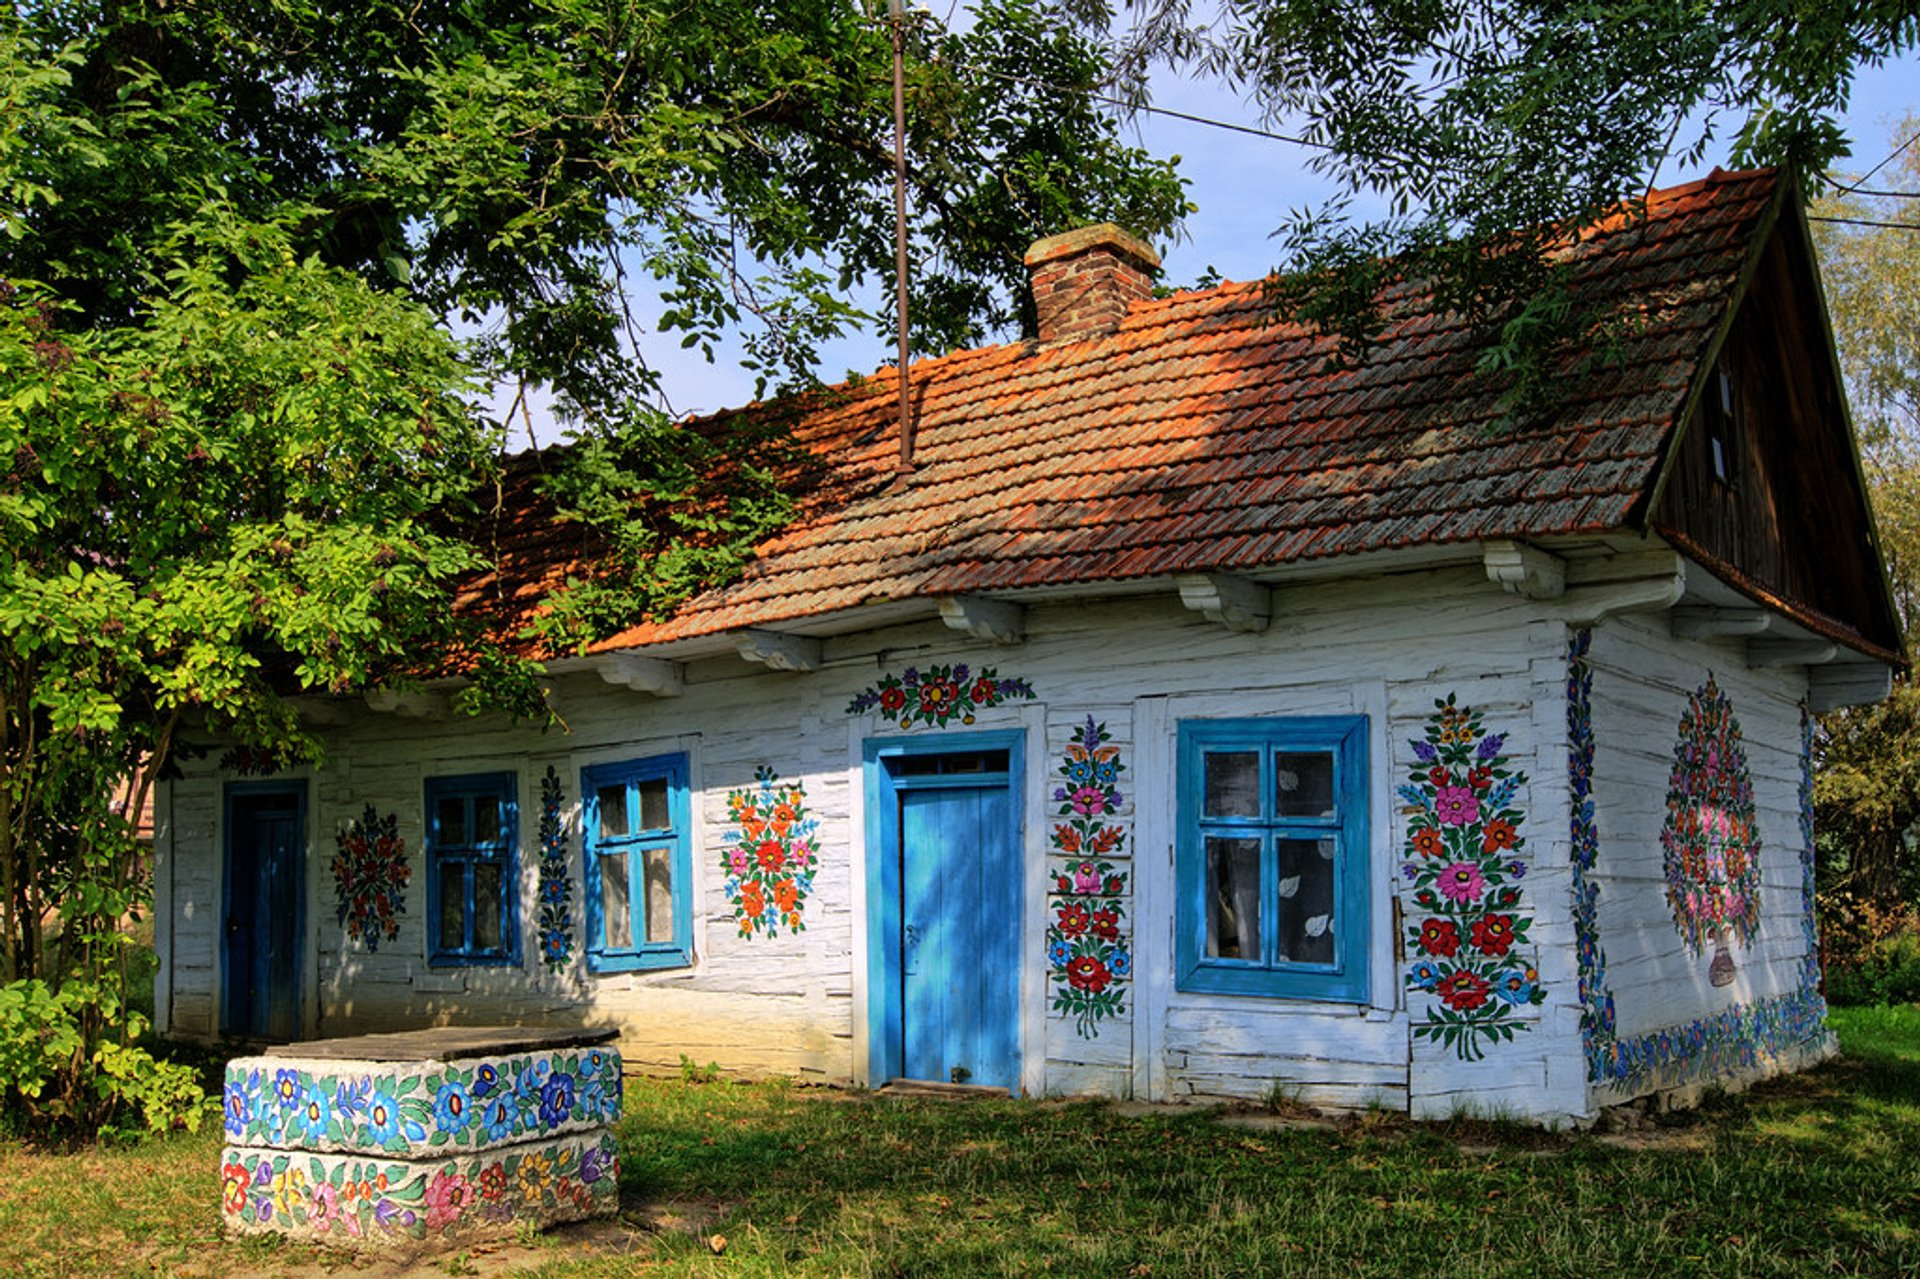 Best time for Painted Cottage Contest in Zalipie in Krakow